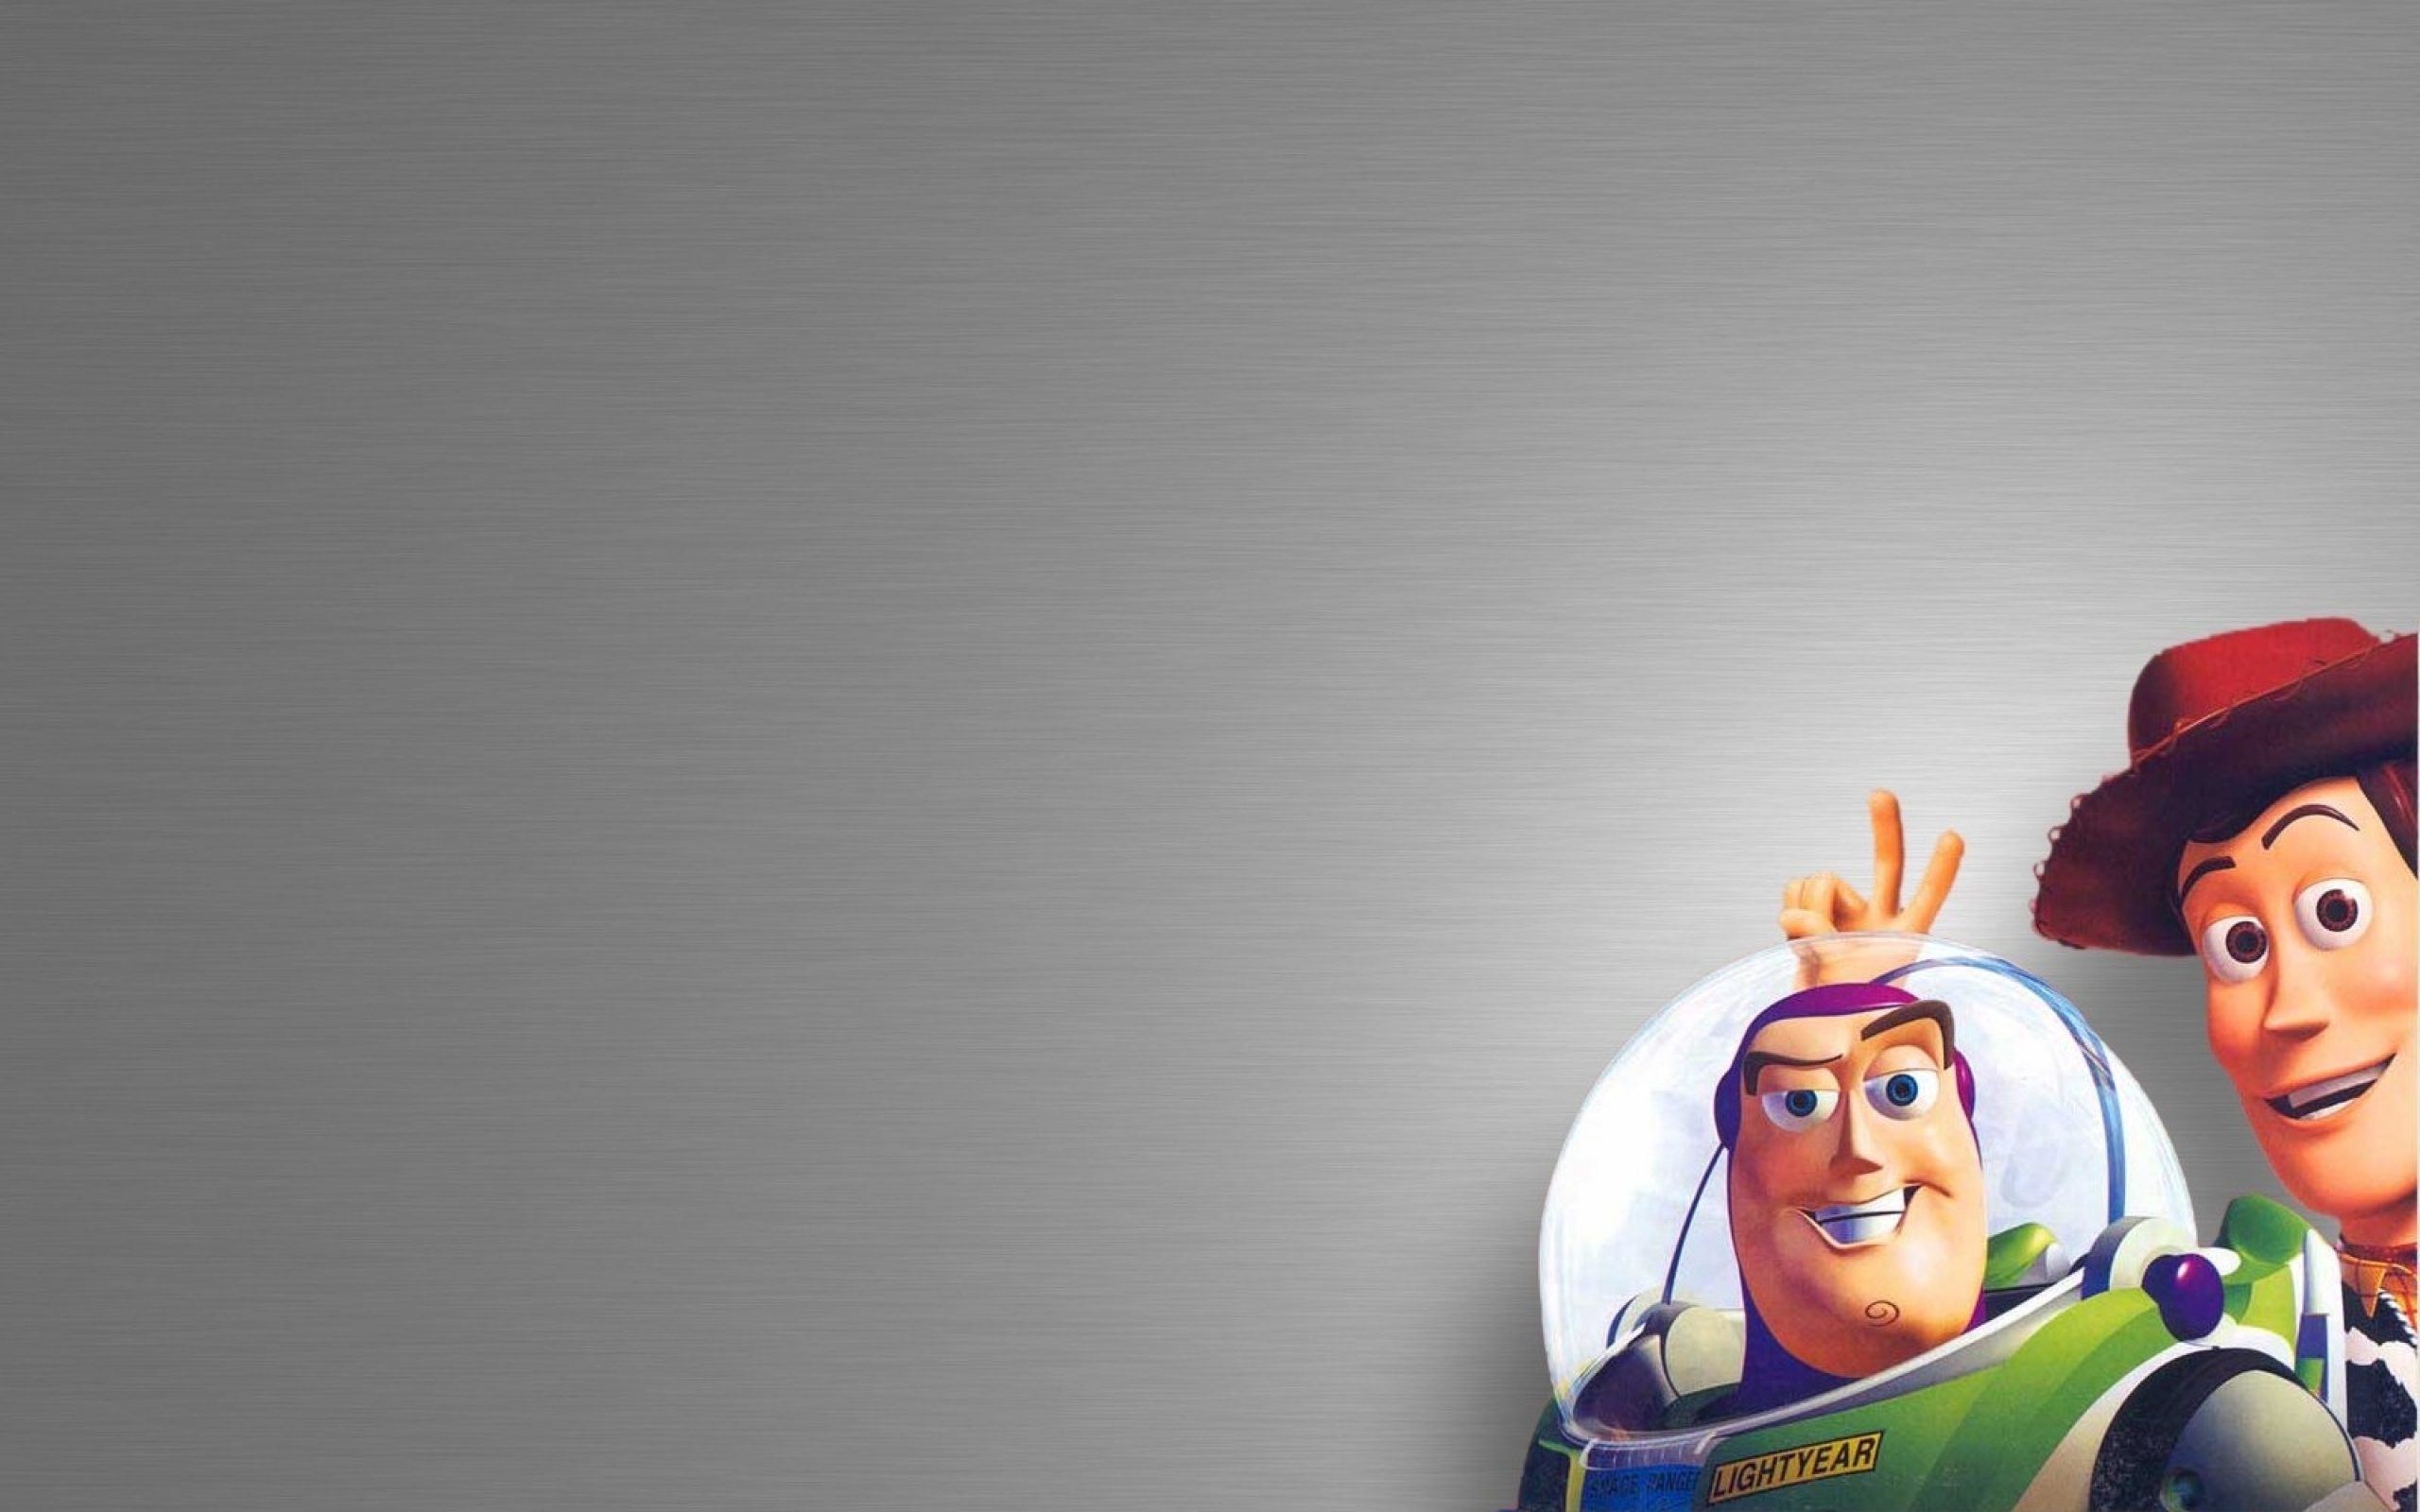 download toy story wallpaper 13289 2560x1600 px high definition